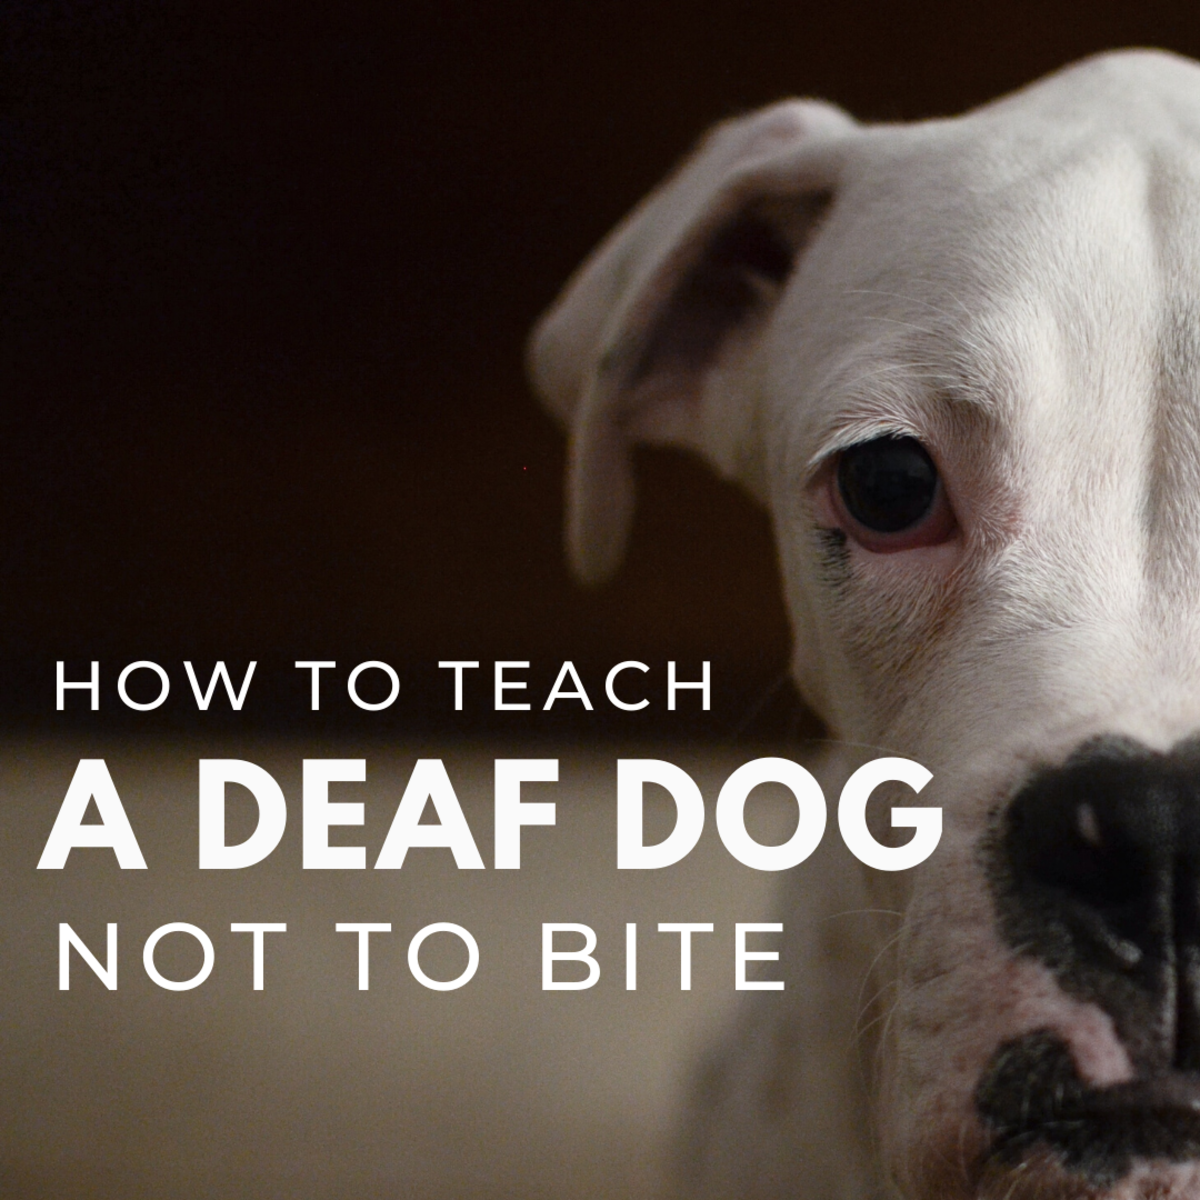 How to Teach a Deaf Dog Not to Bite (Bite Inhibition)